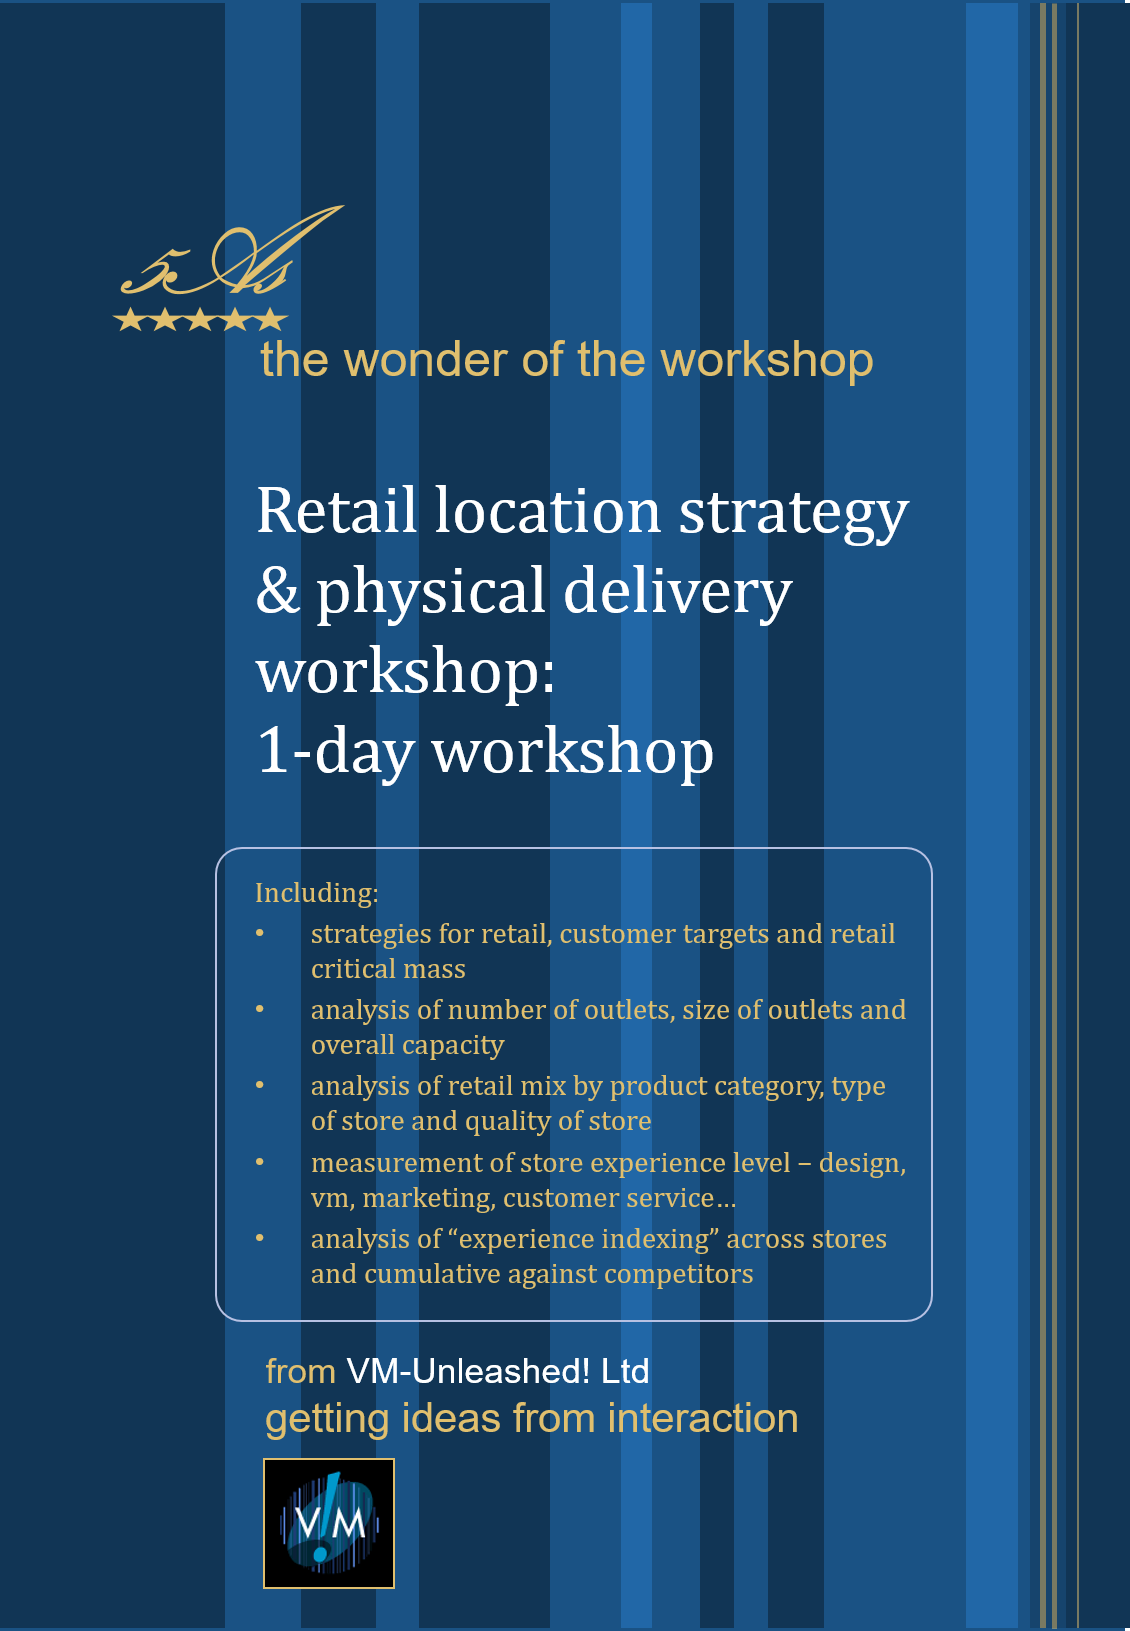 vm-unleashed-workshop-retail-location-delivery